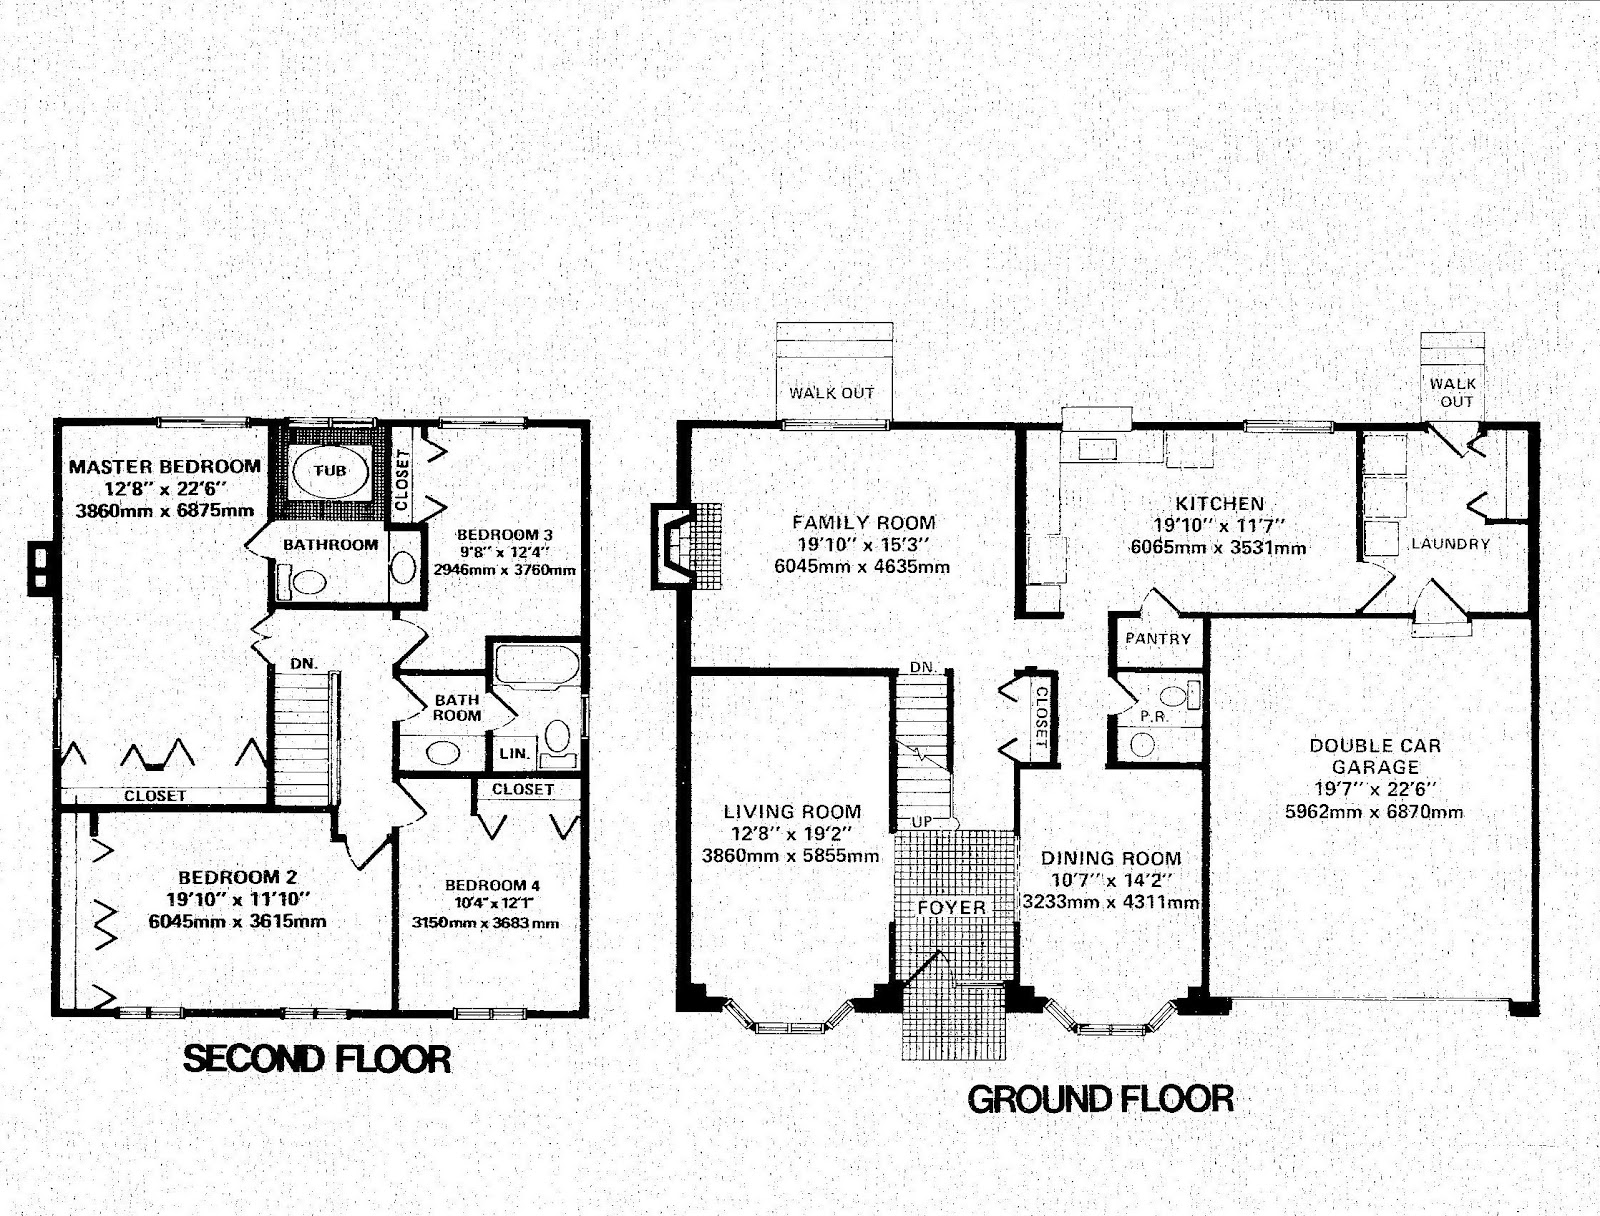 mid century modern and 1970s era ottawa evolution of a plan the in more recent years lot sizes have shrunk so the centre hall plan is often not possible it appears every so often on corner lots where the house can be